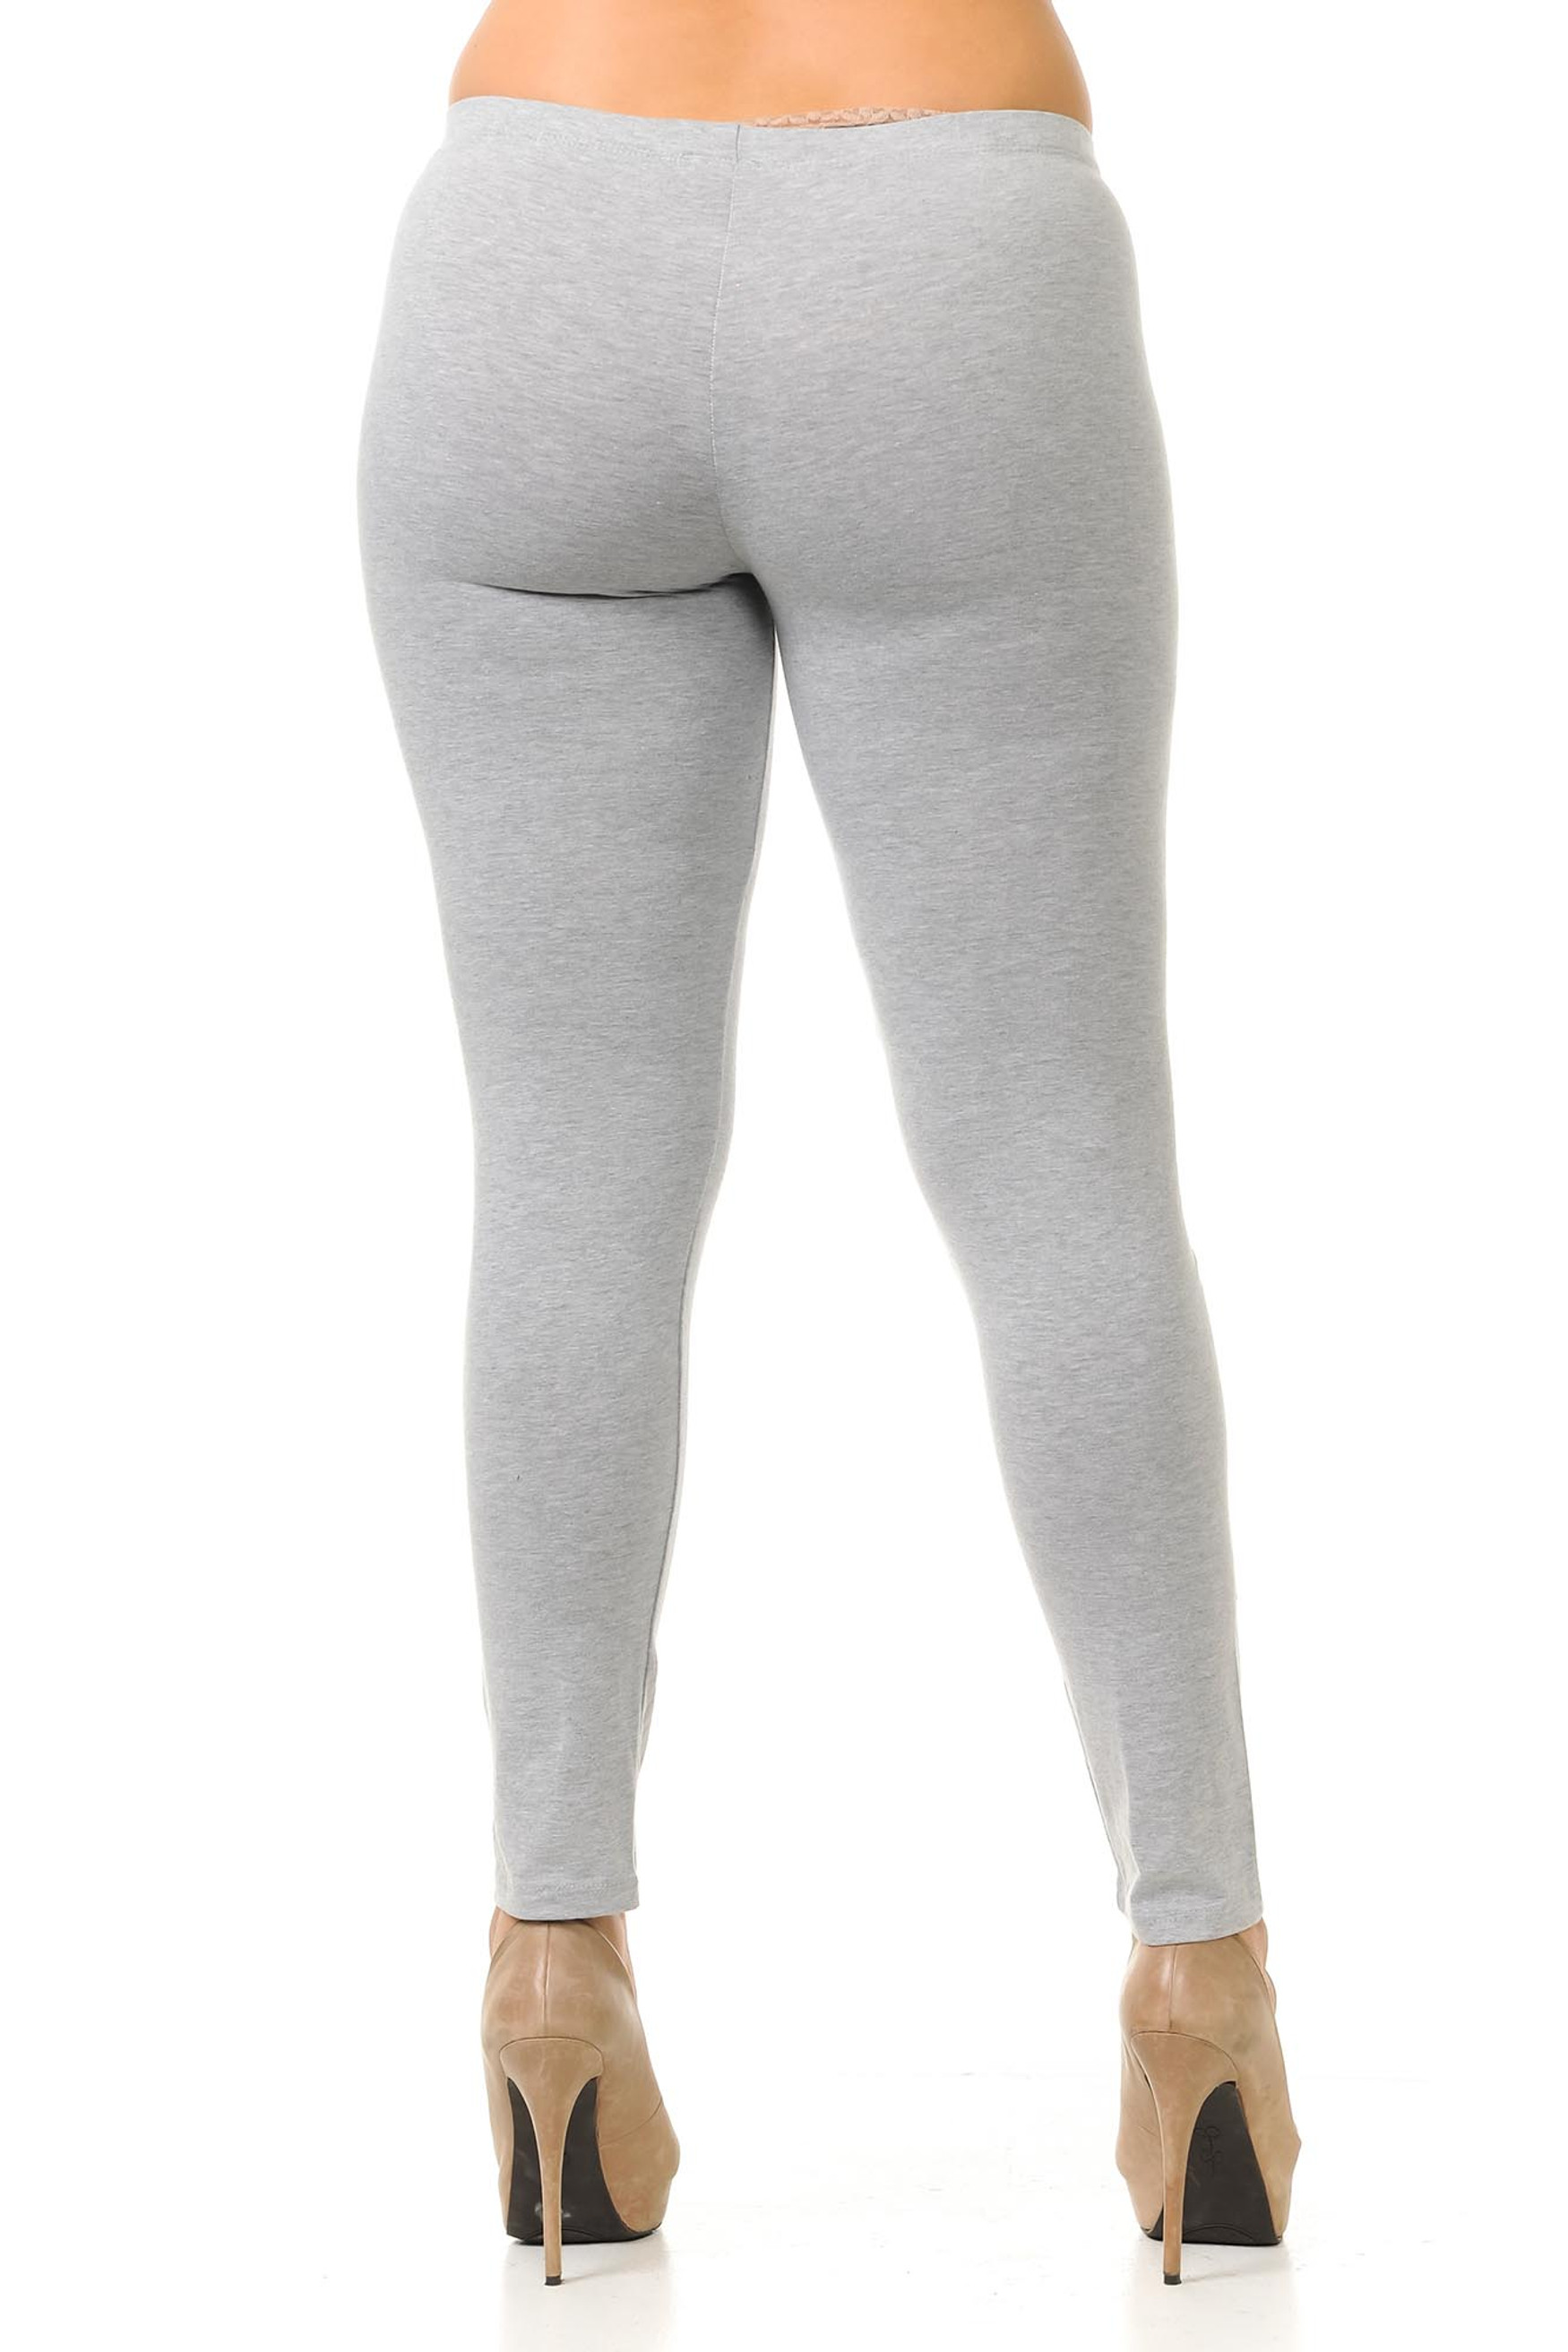 Rear view image of Heather Gray USA Cotton Full Length Leggings - Plus Size